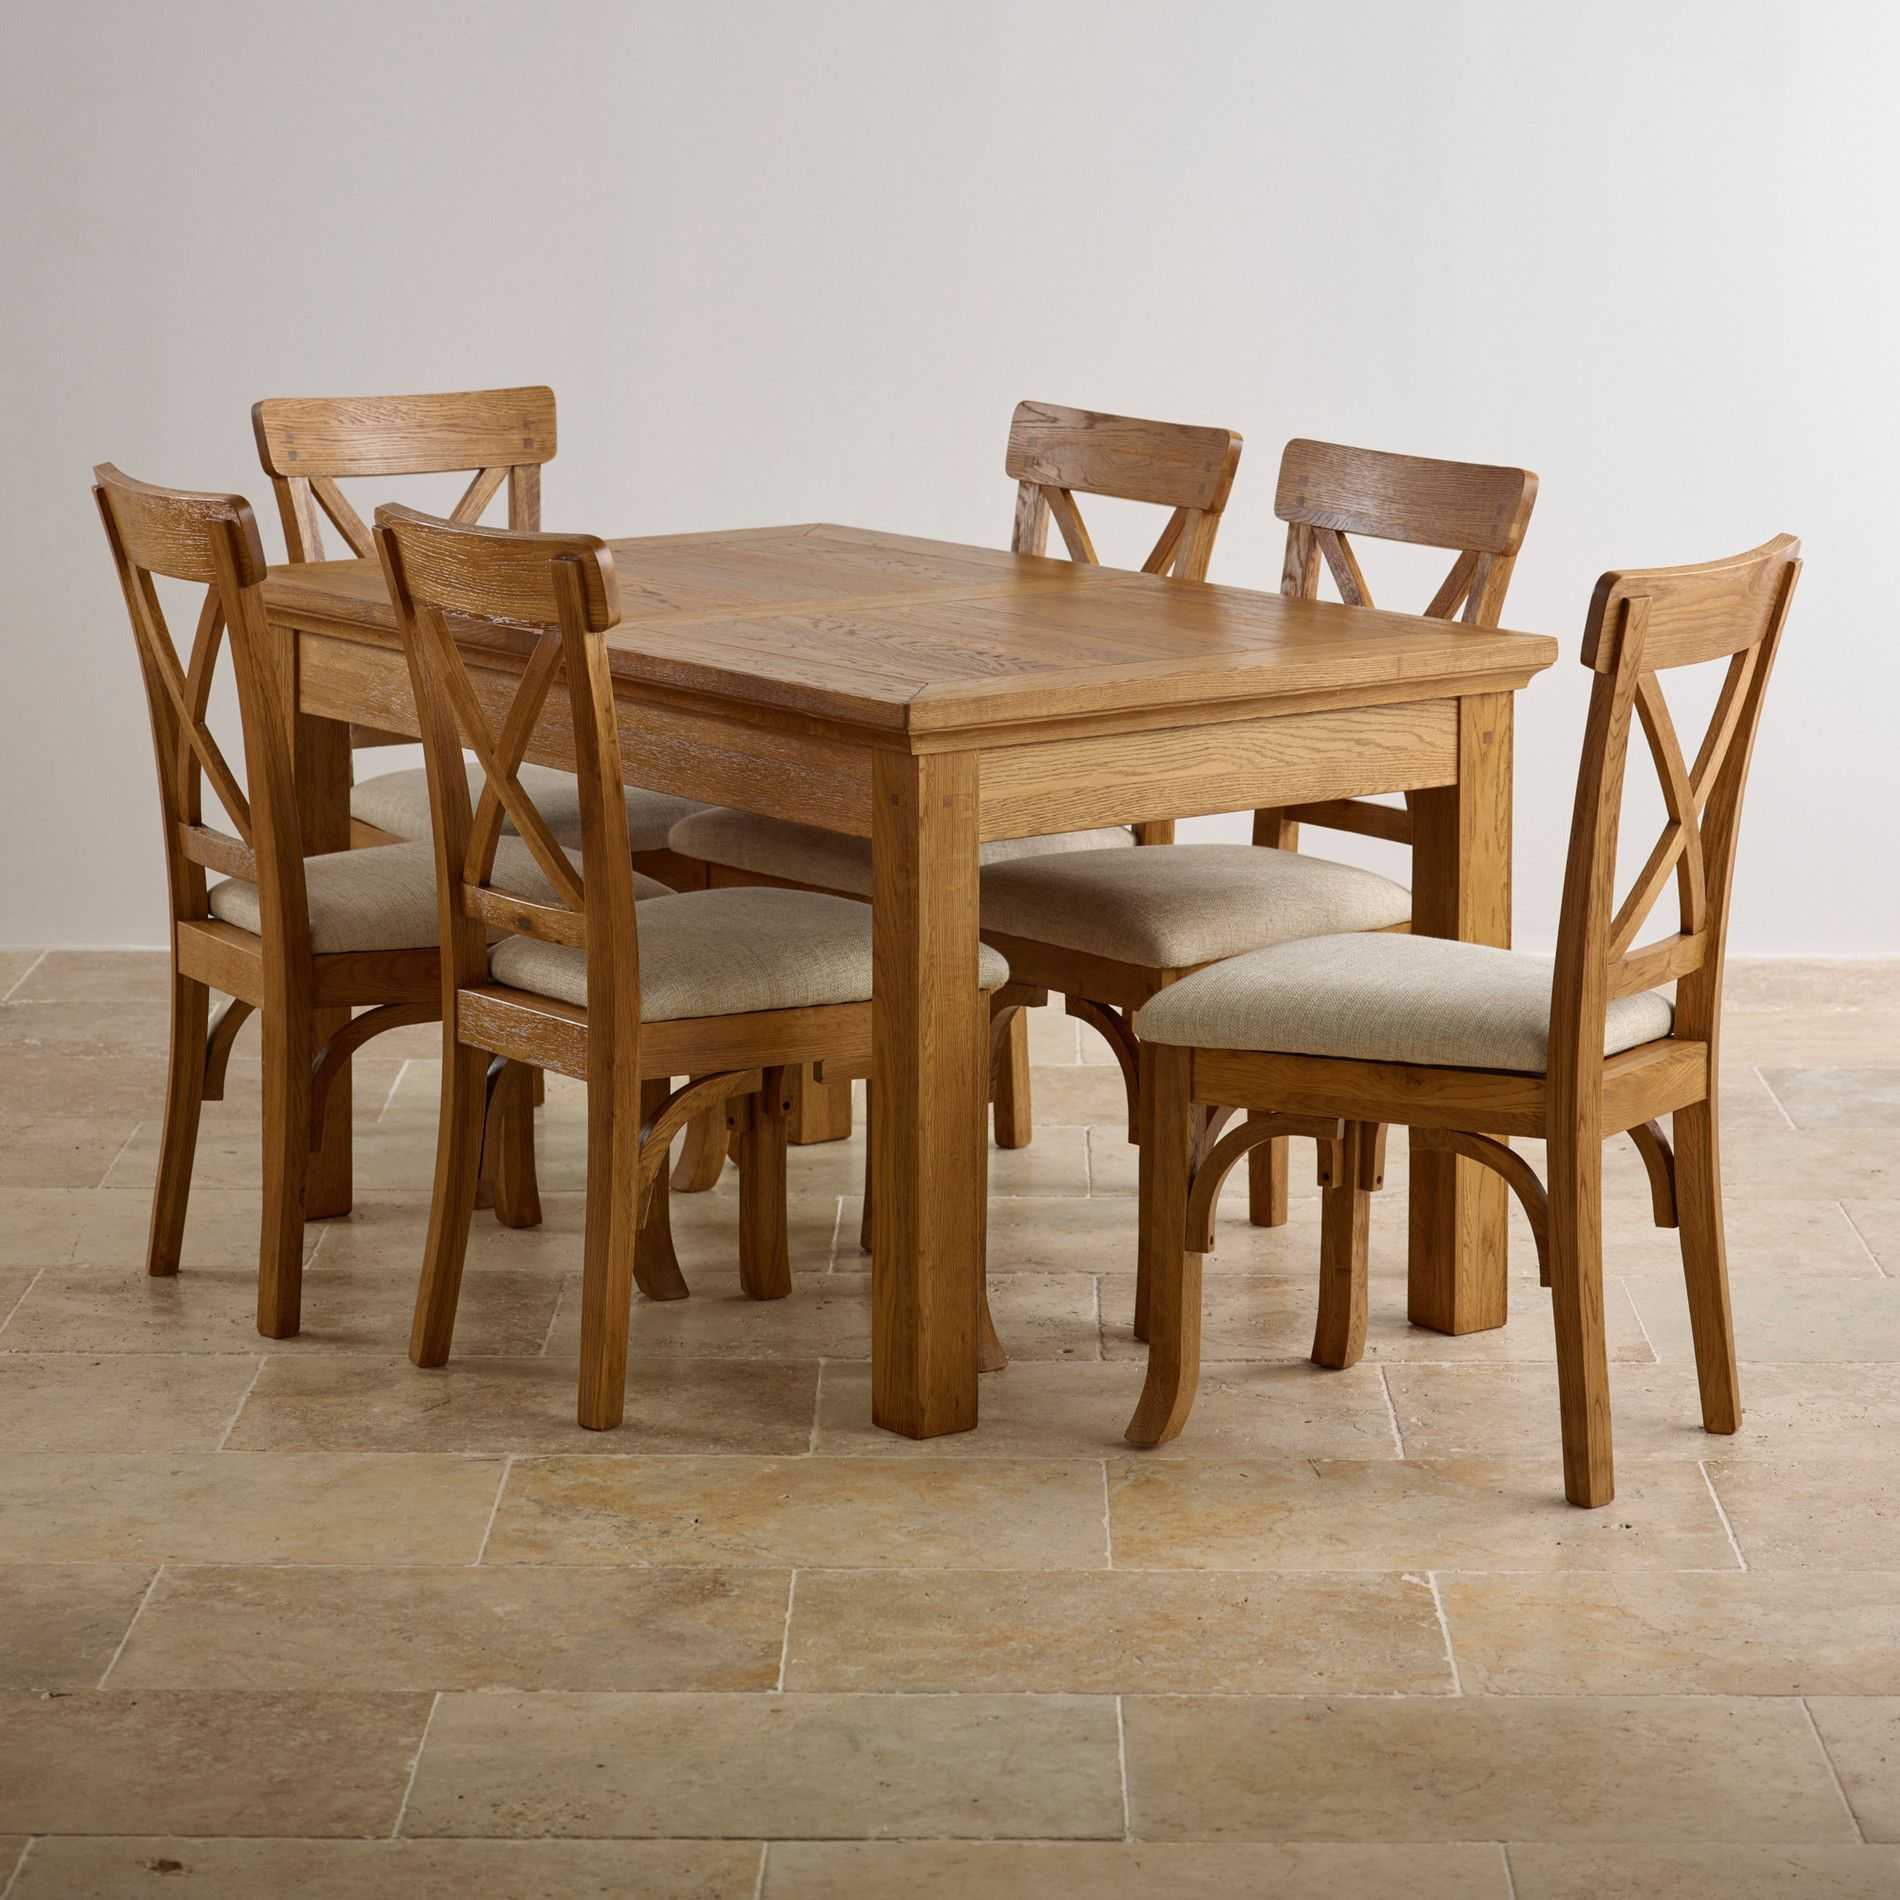 extendable dining set in rustic brushed solid oak - Solid Oak Extending Dining Table And 6 Chairs